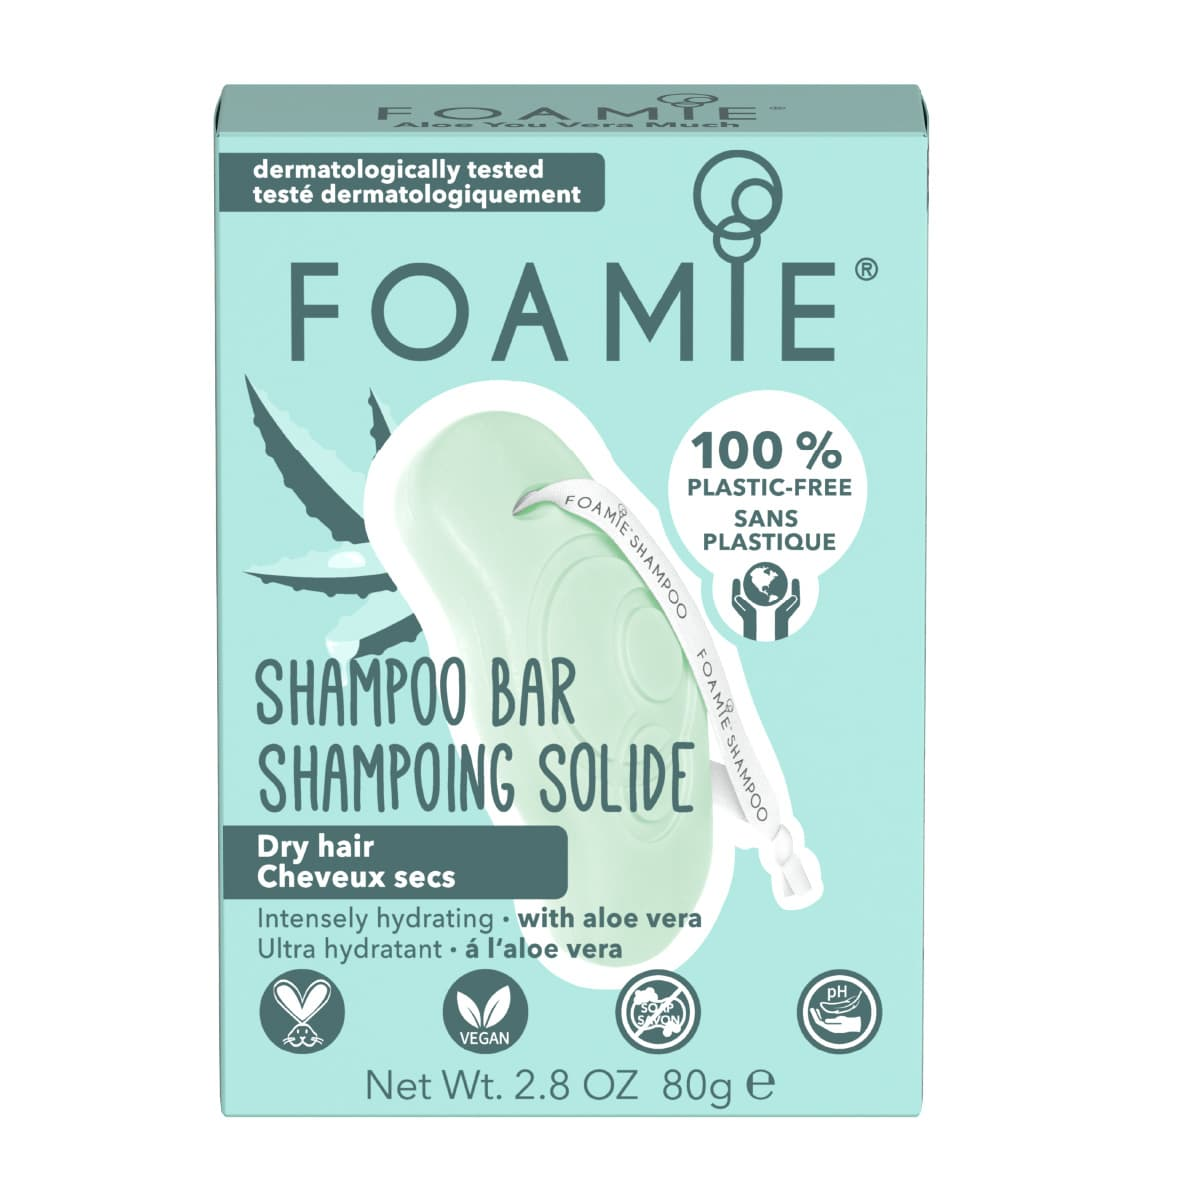 Foamie - Shampoing solide Aloe You Vera Much